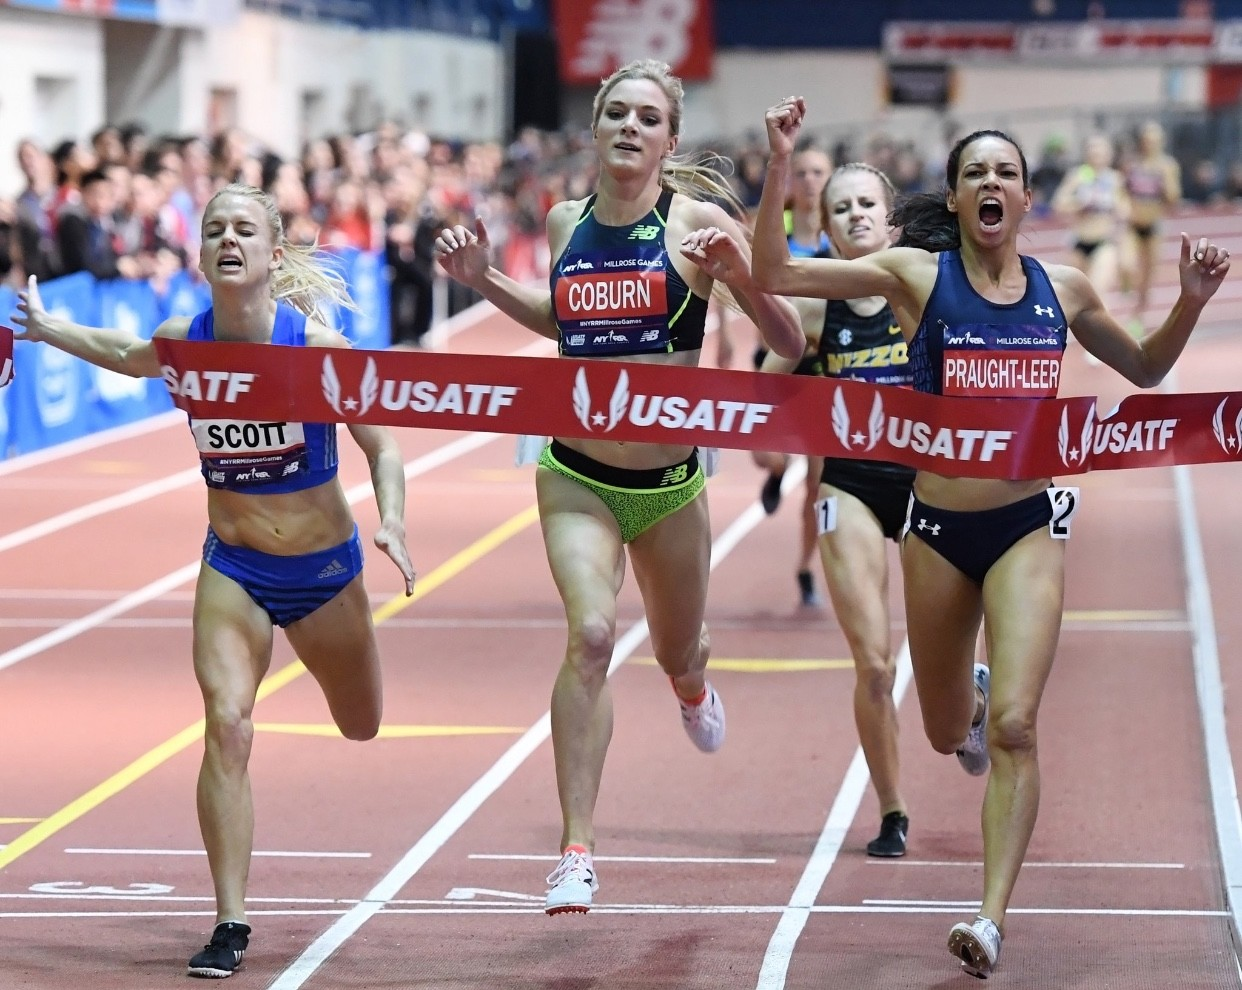 The 111th NYRR Millrose Games were more exciting than Ever